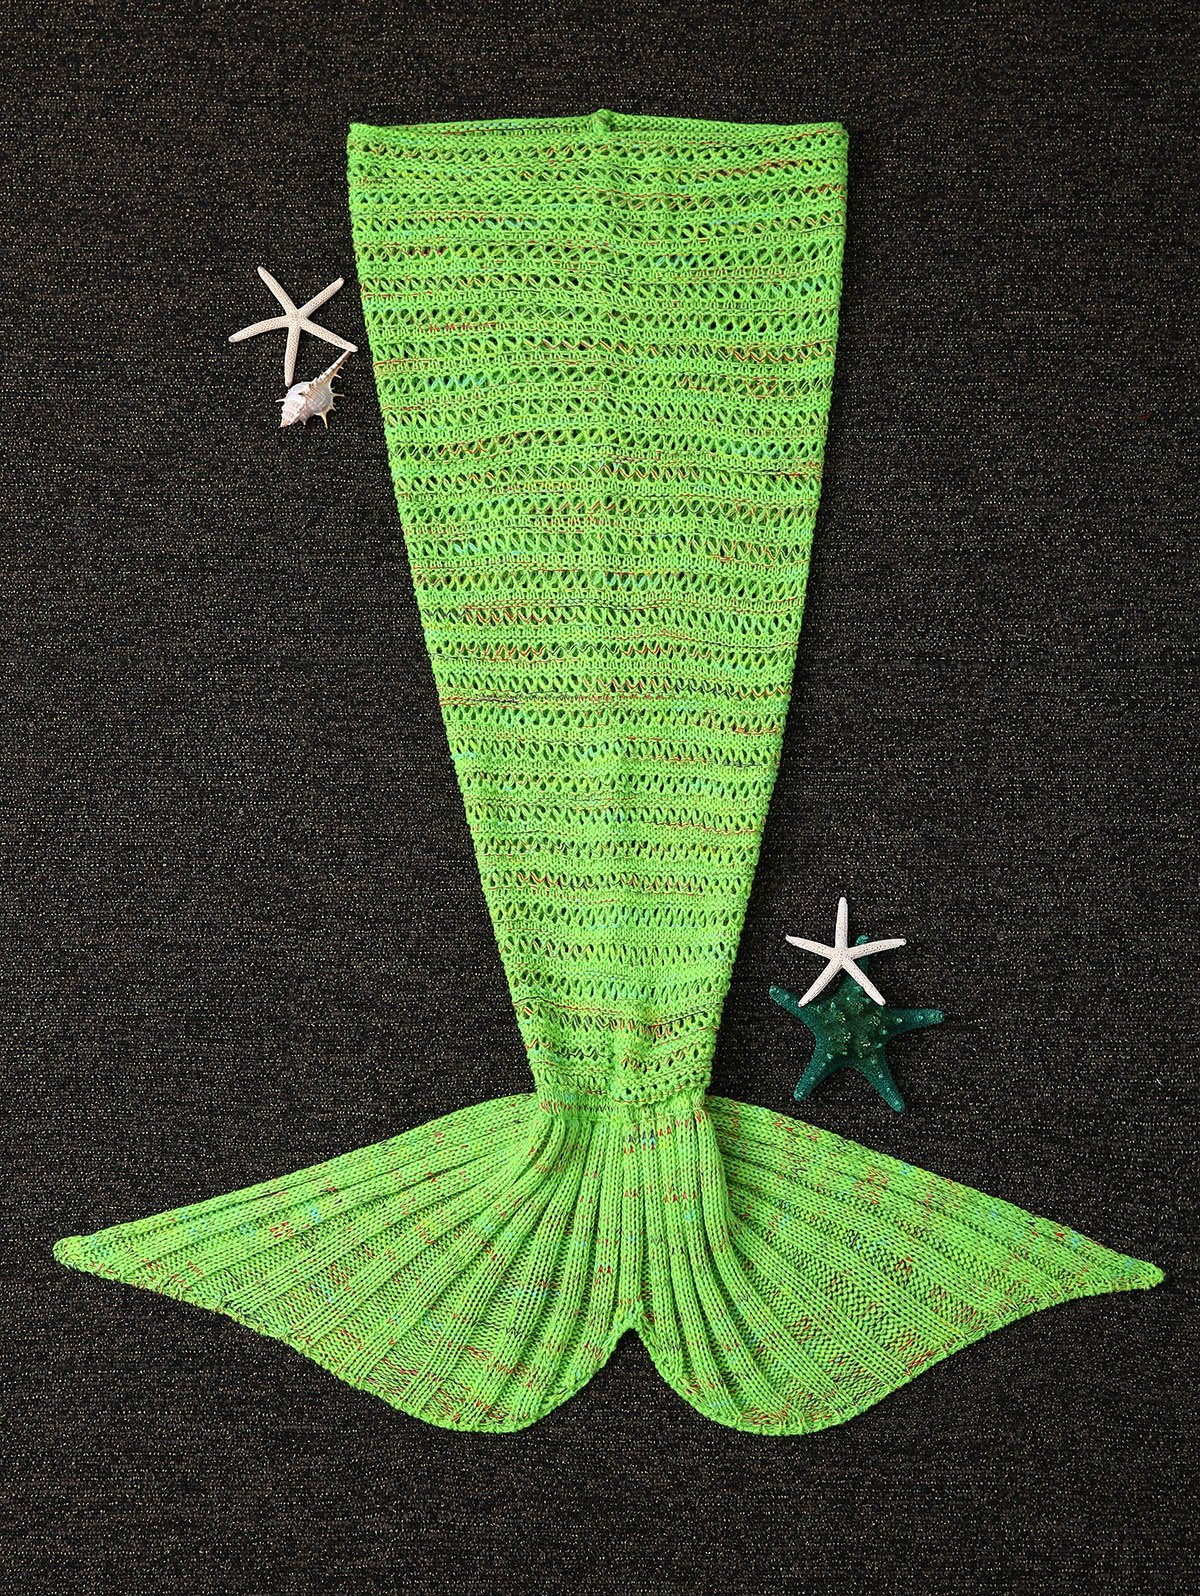 Crochet Knitting Open-Work Design Mermaid Tail Shape Blanket - GREEN